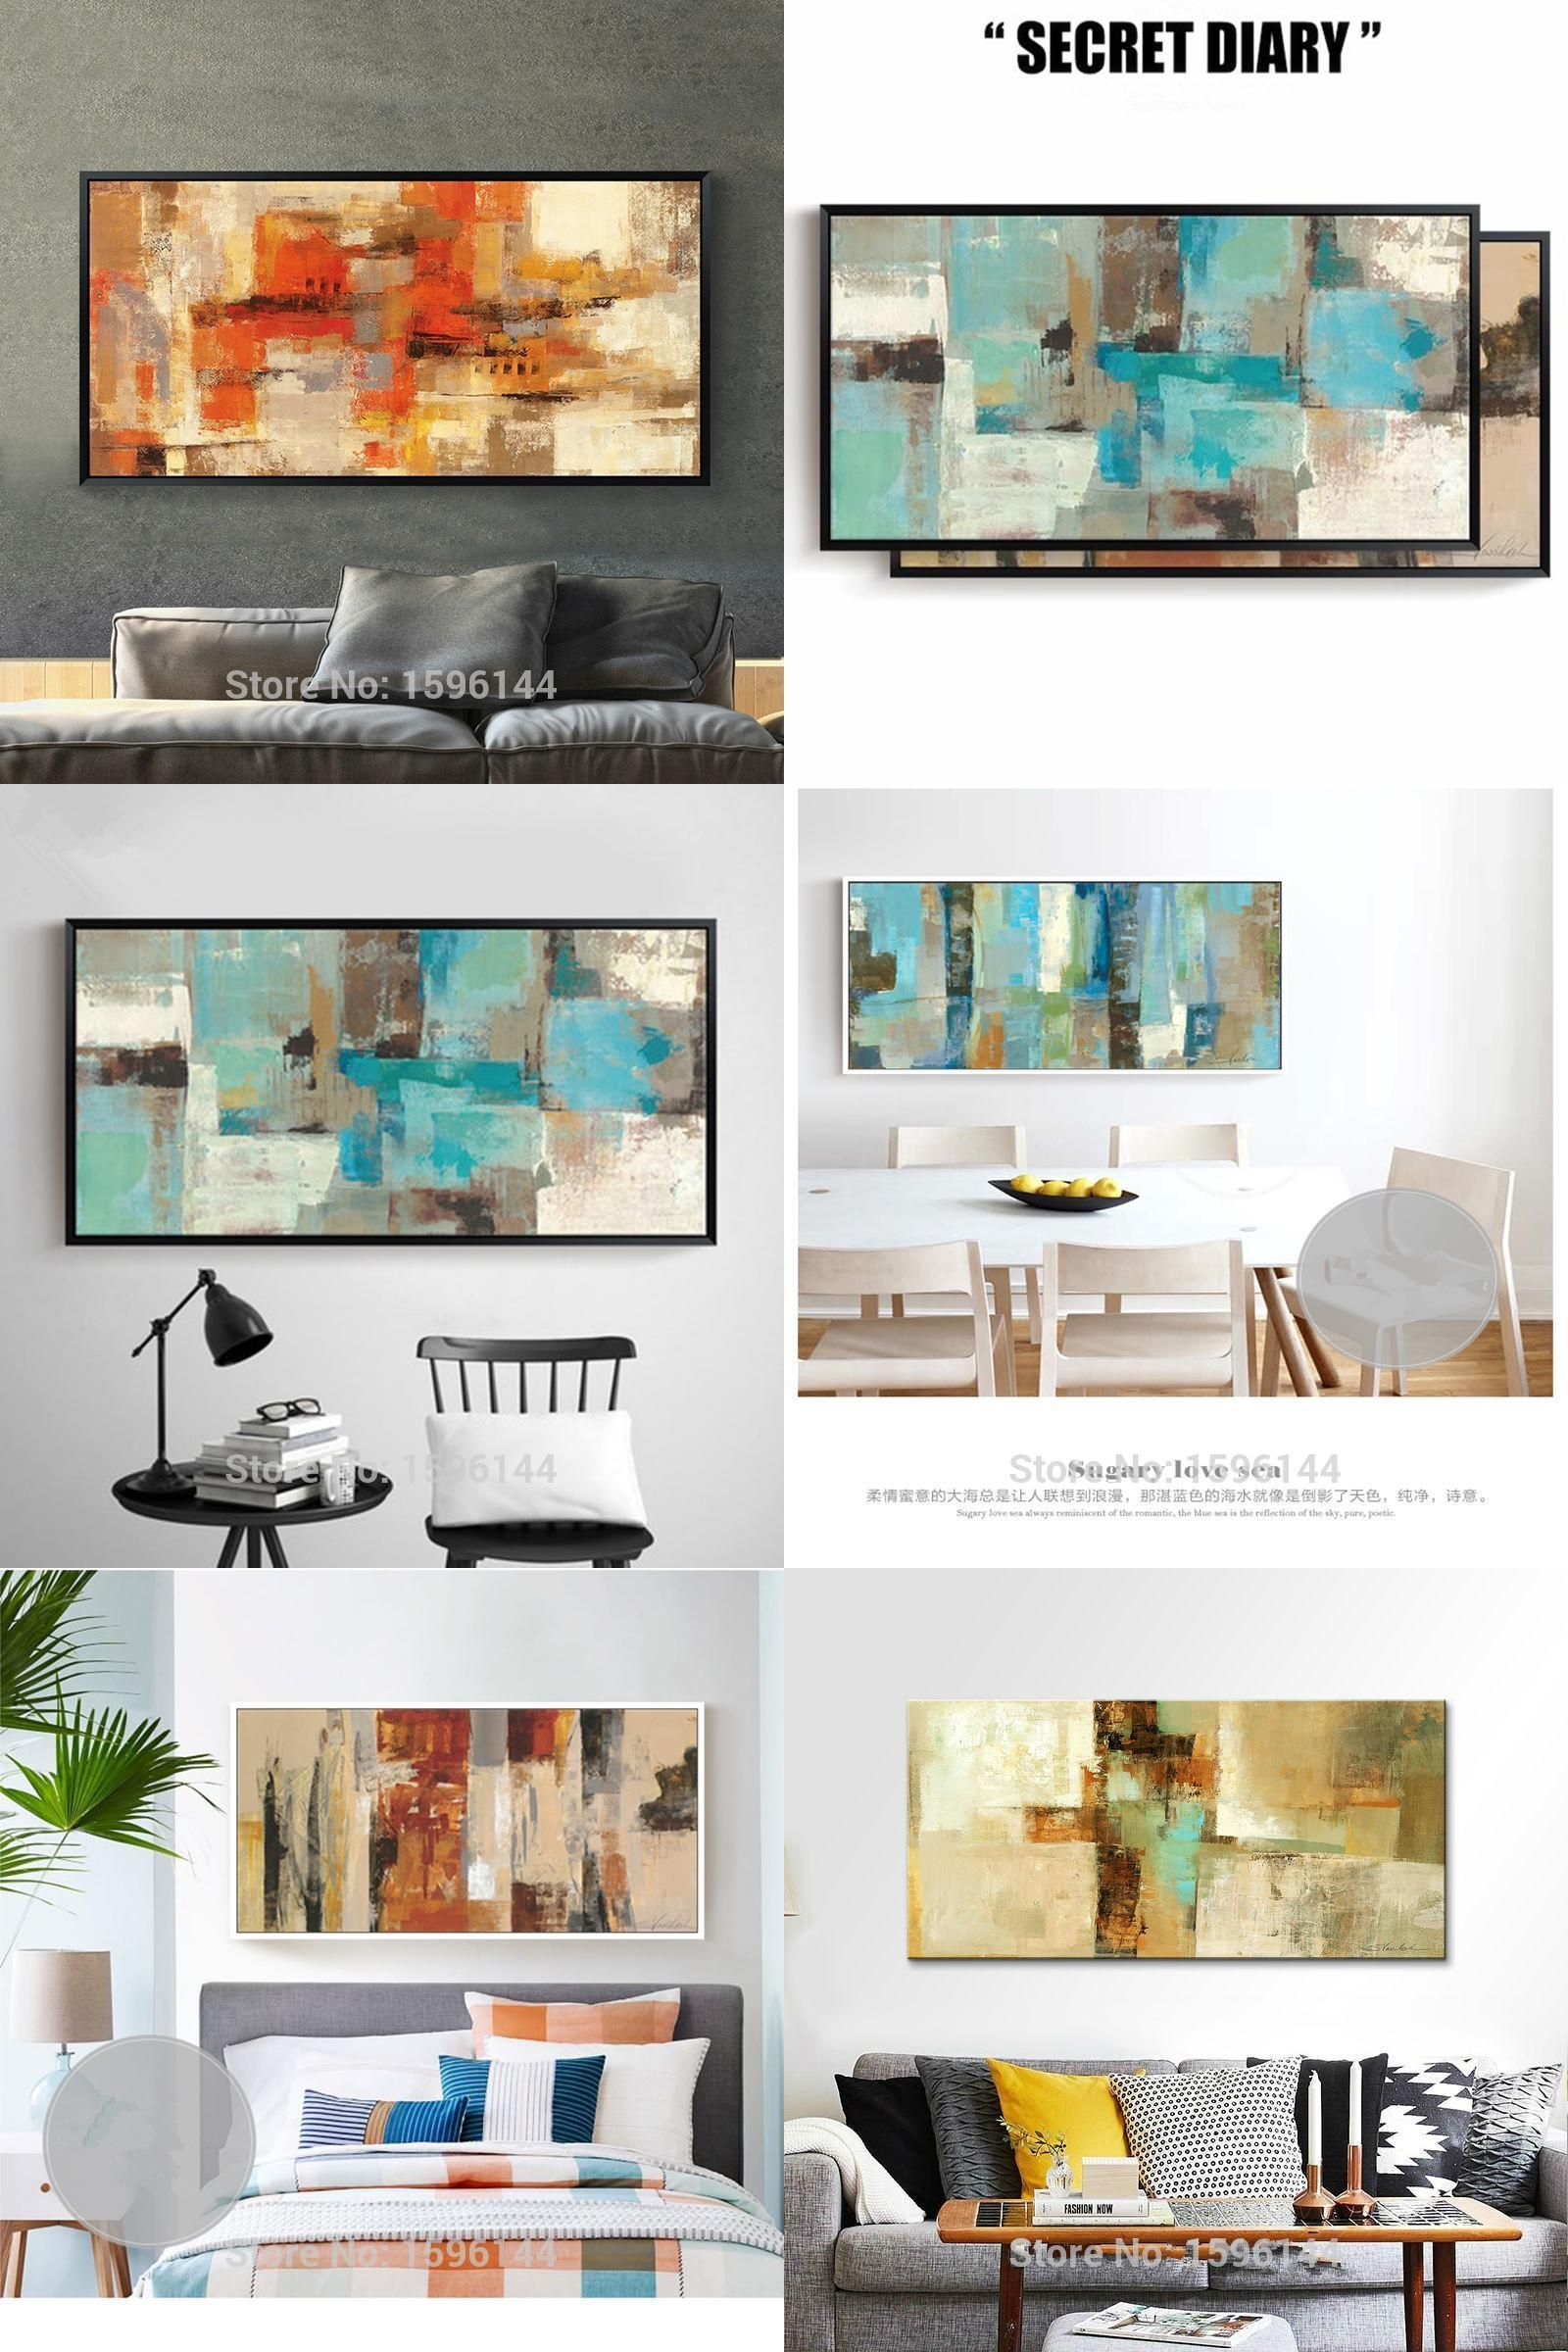 Room Visit to Buy Hand painted canvas